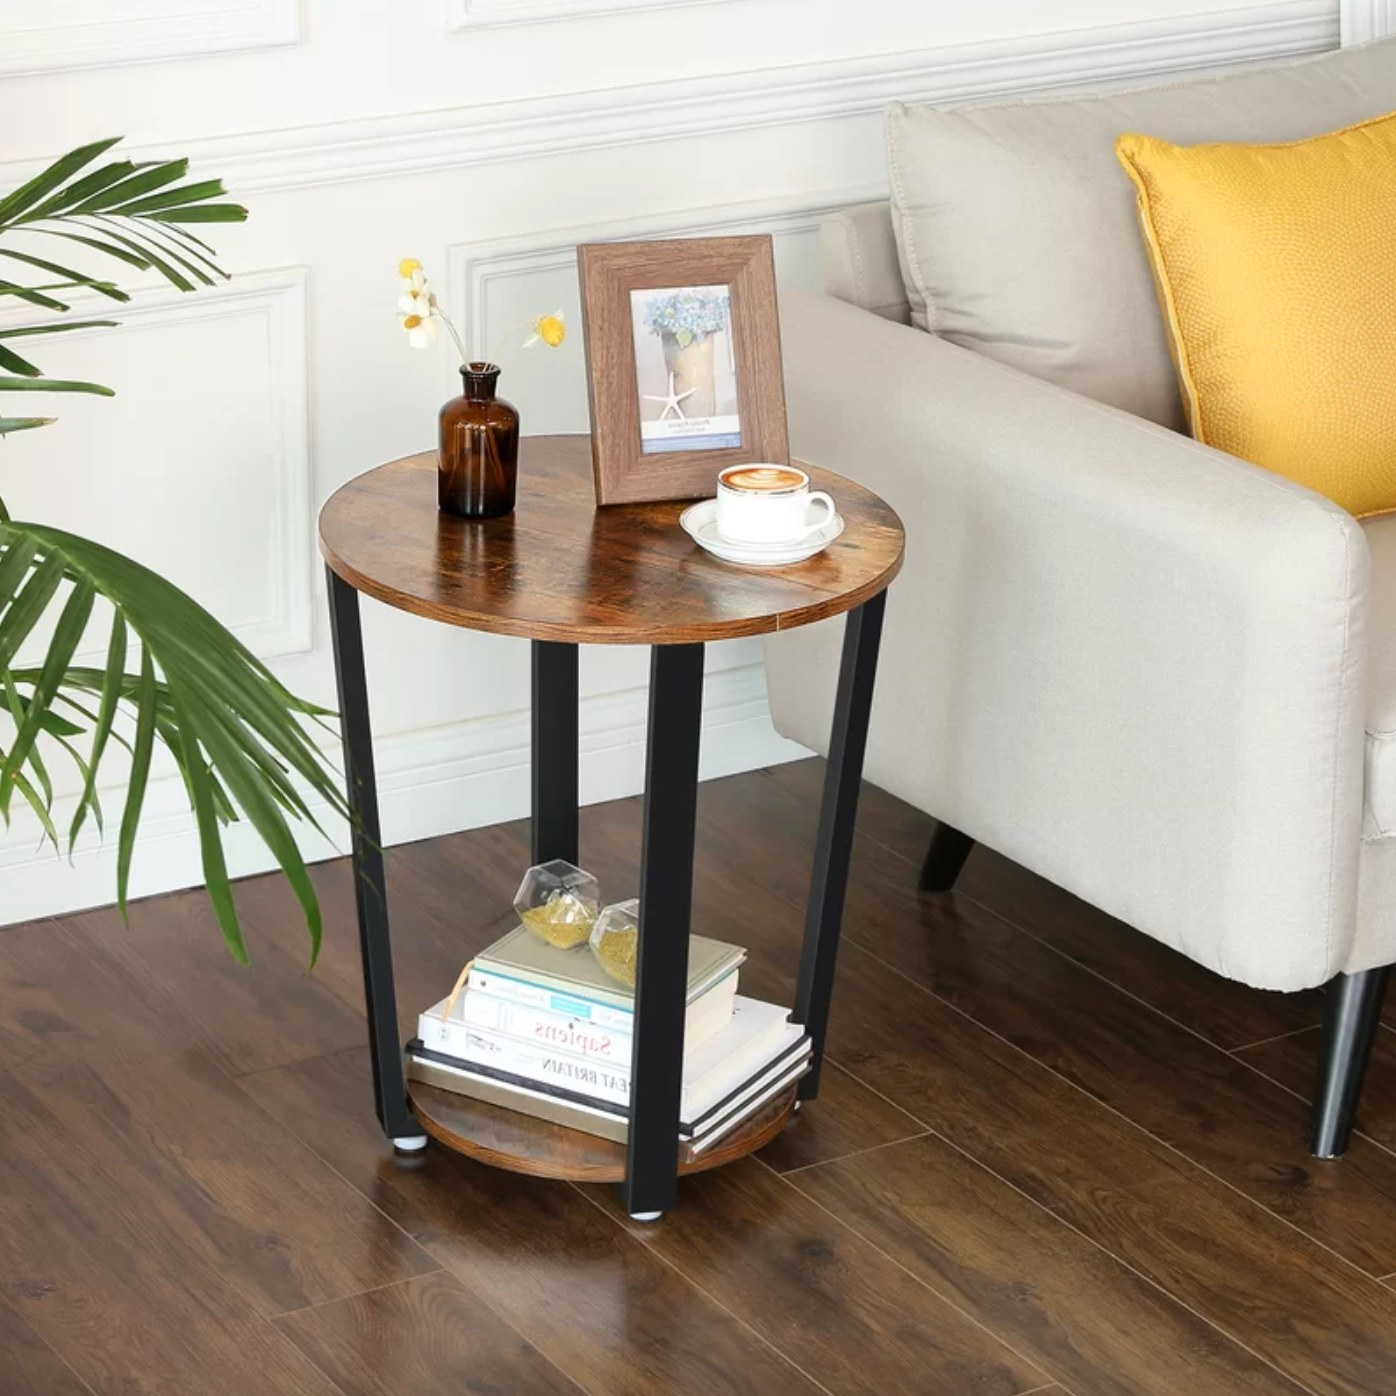 The end table in rustic wood